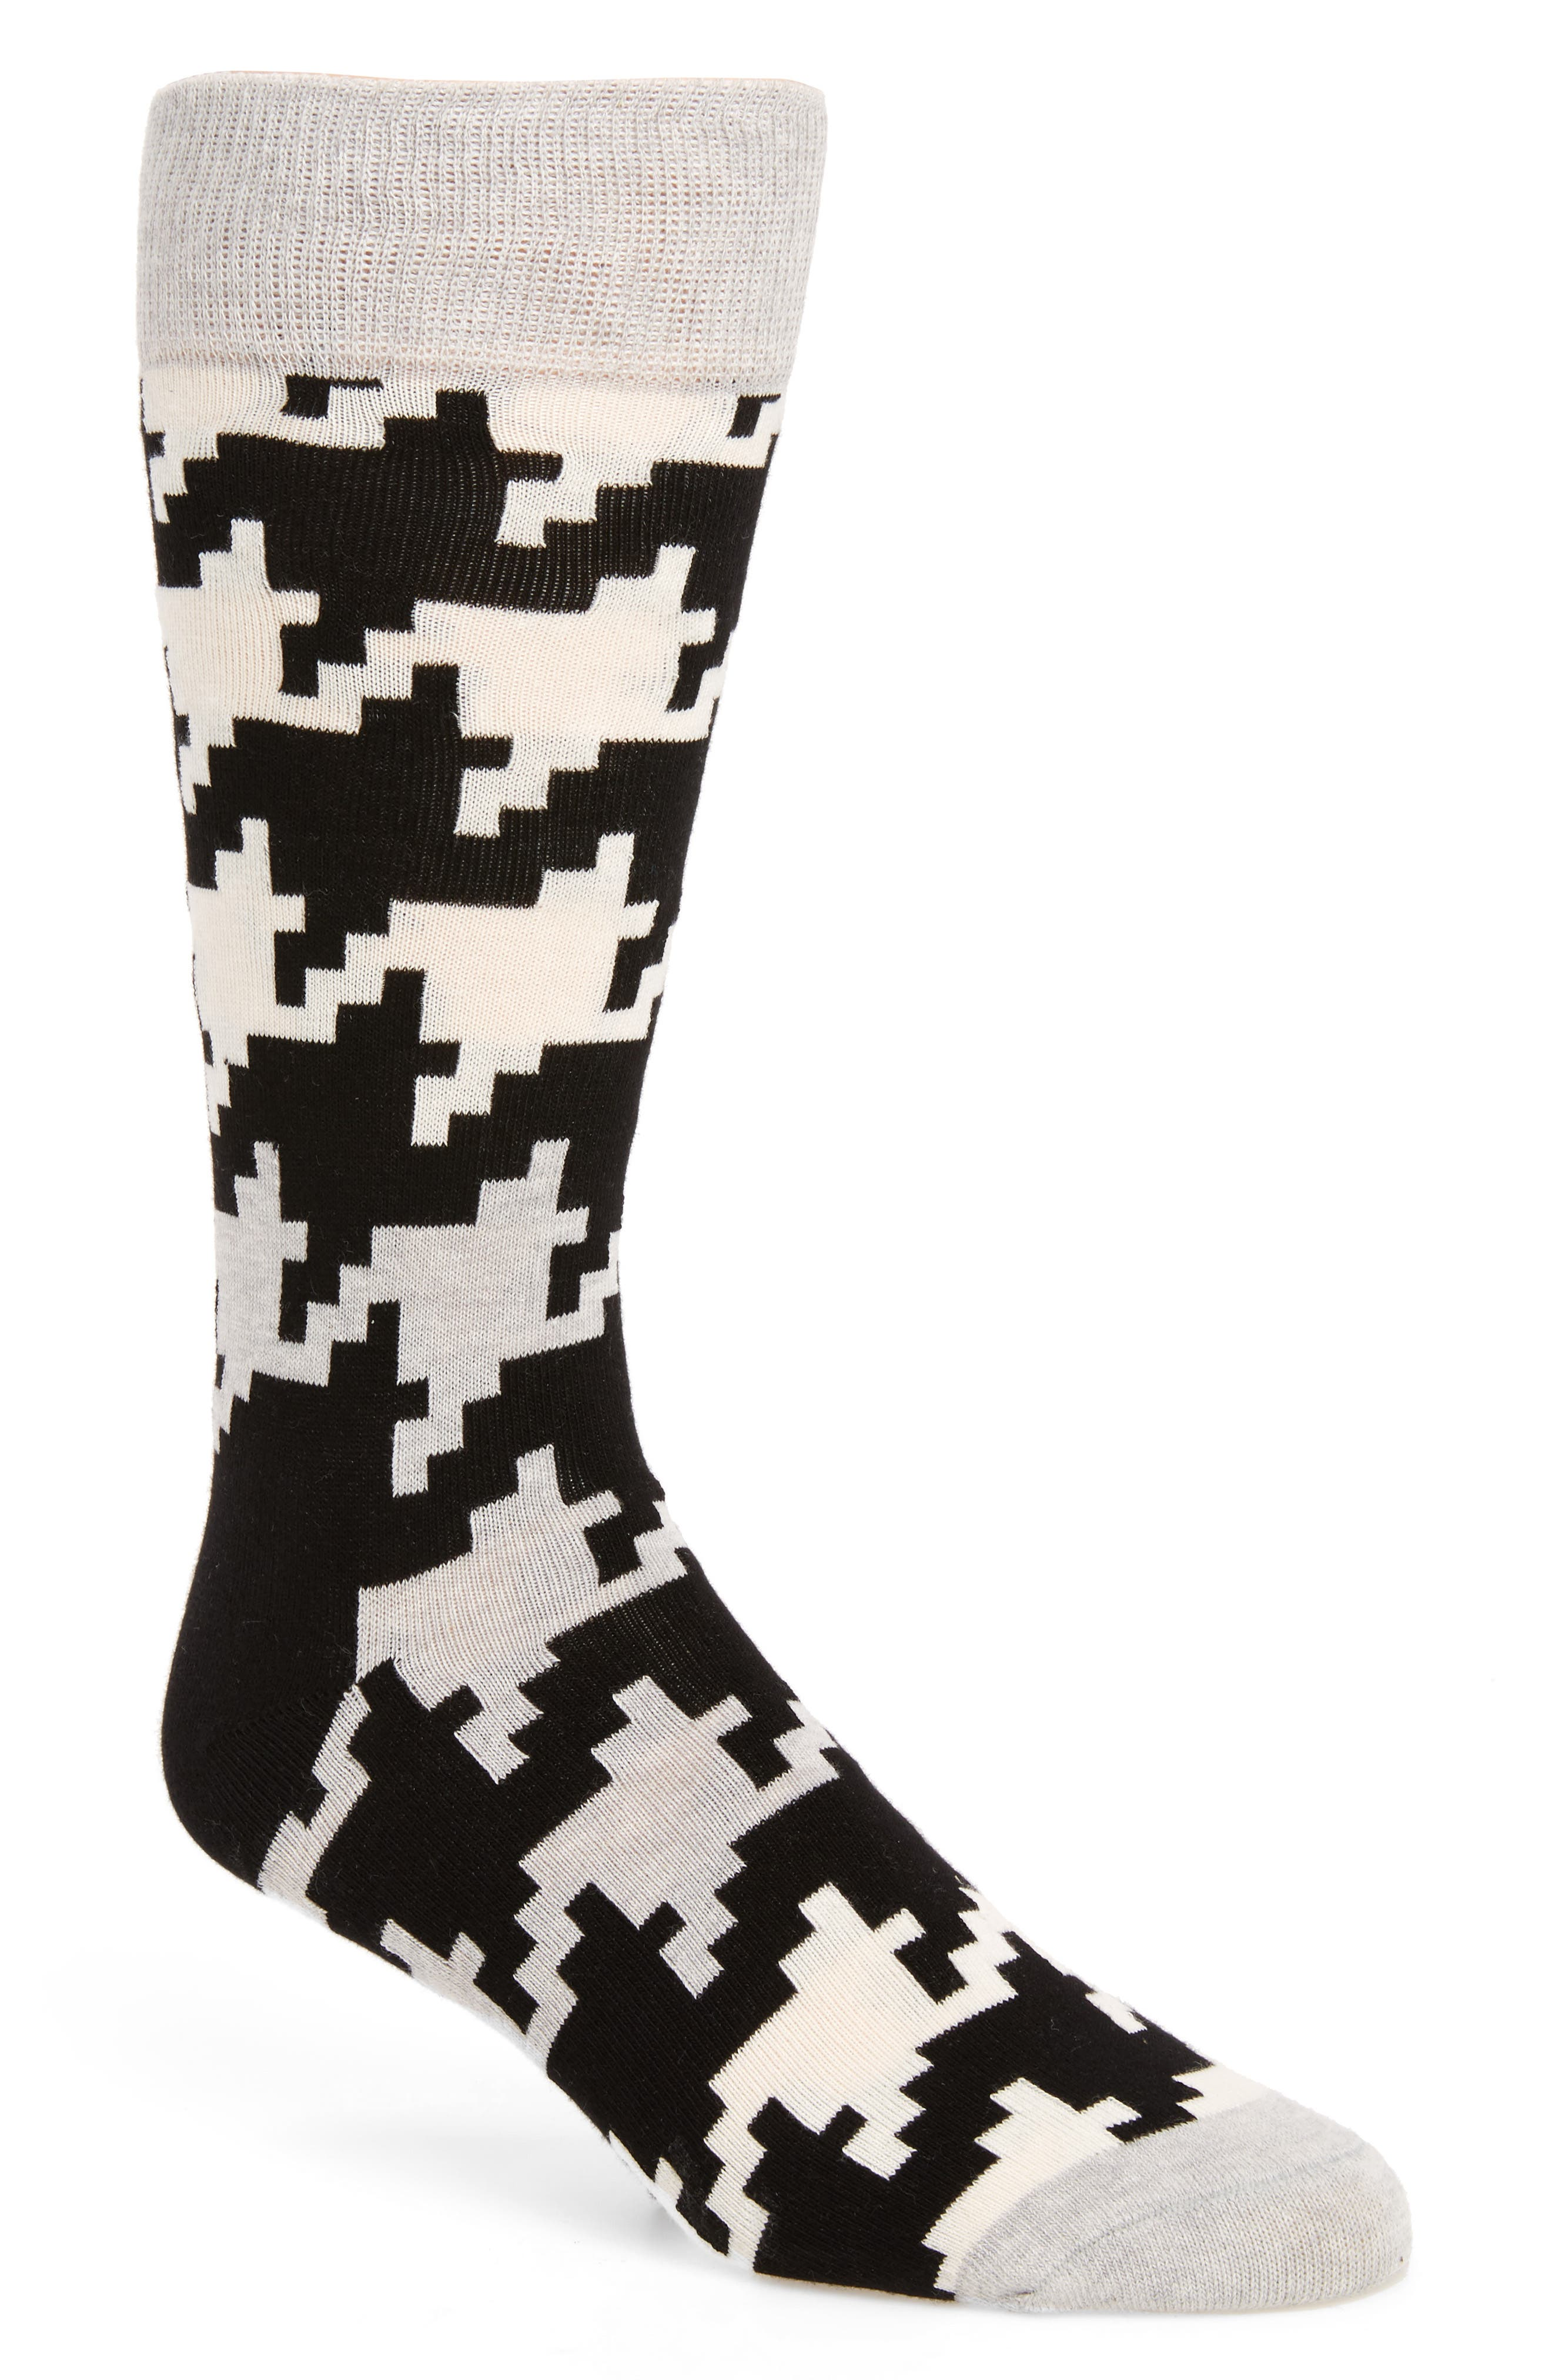 Digital Houndstooth Socks,                             Main thumbnail 1, color,                             001